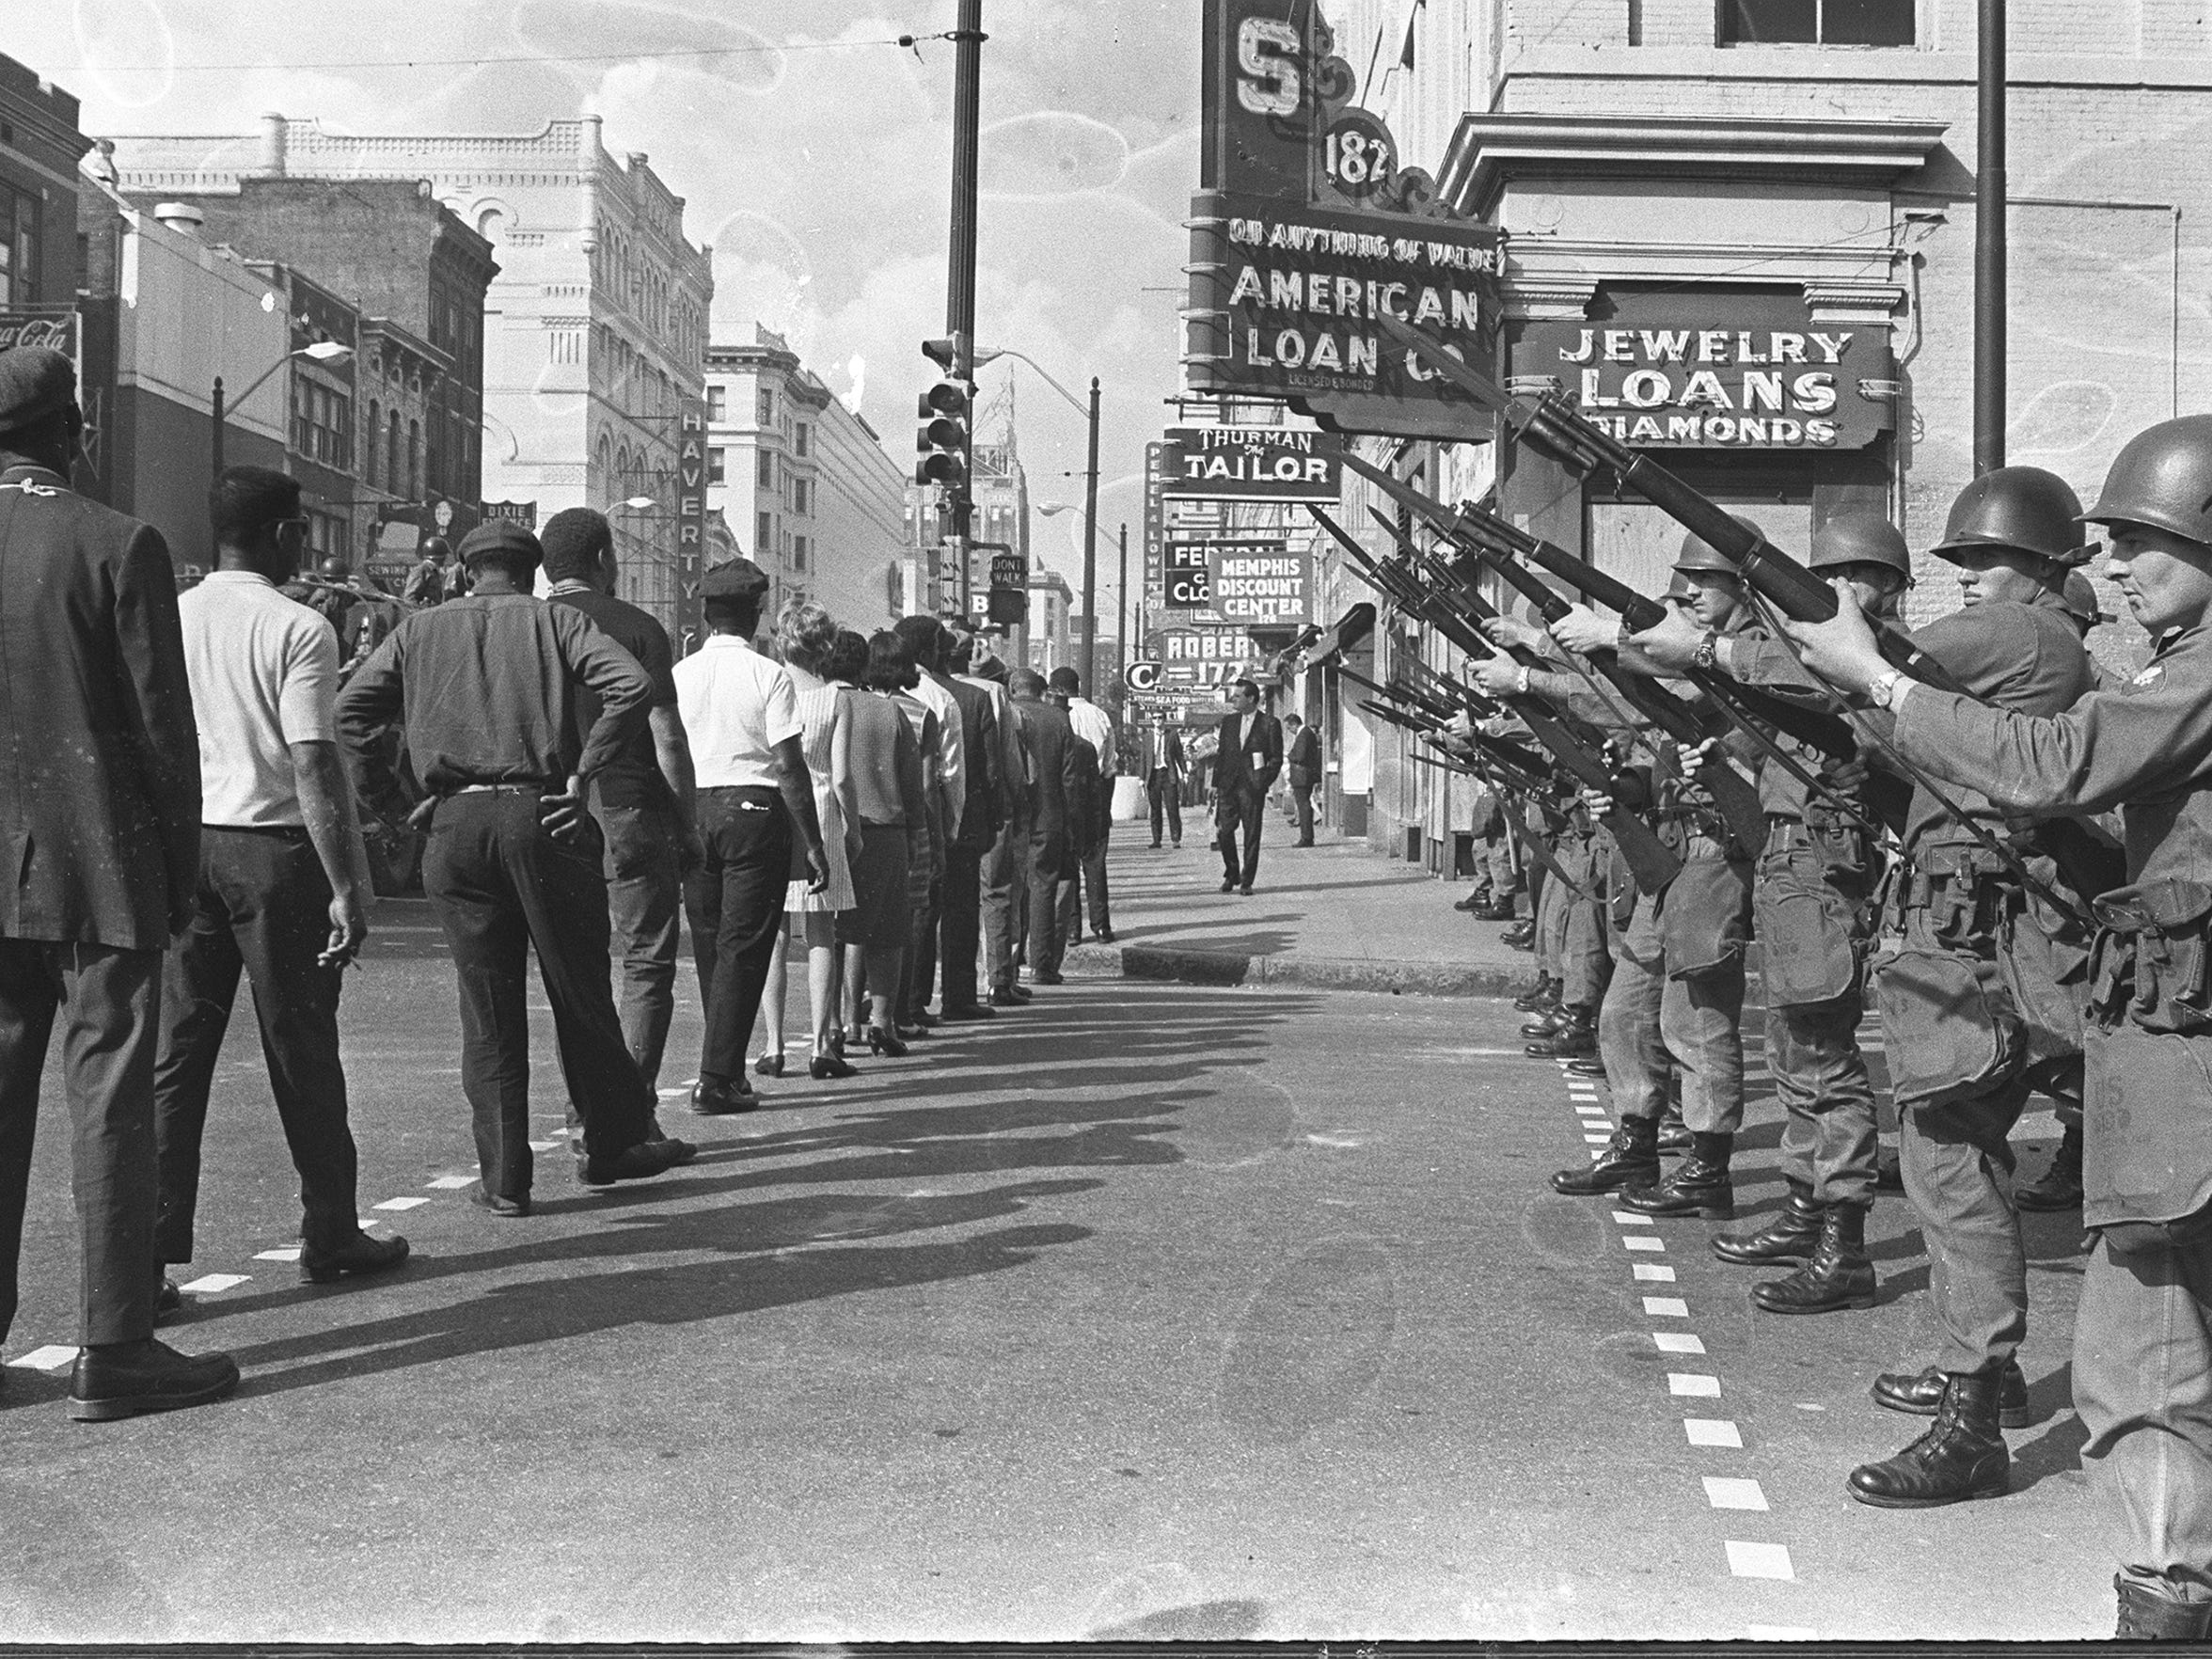 The daily sanitation strike marches resumed March 29, 1968, one day after rioting left Main and Beale littered with bricks and broken glass and dappled with blood.